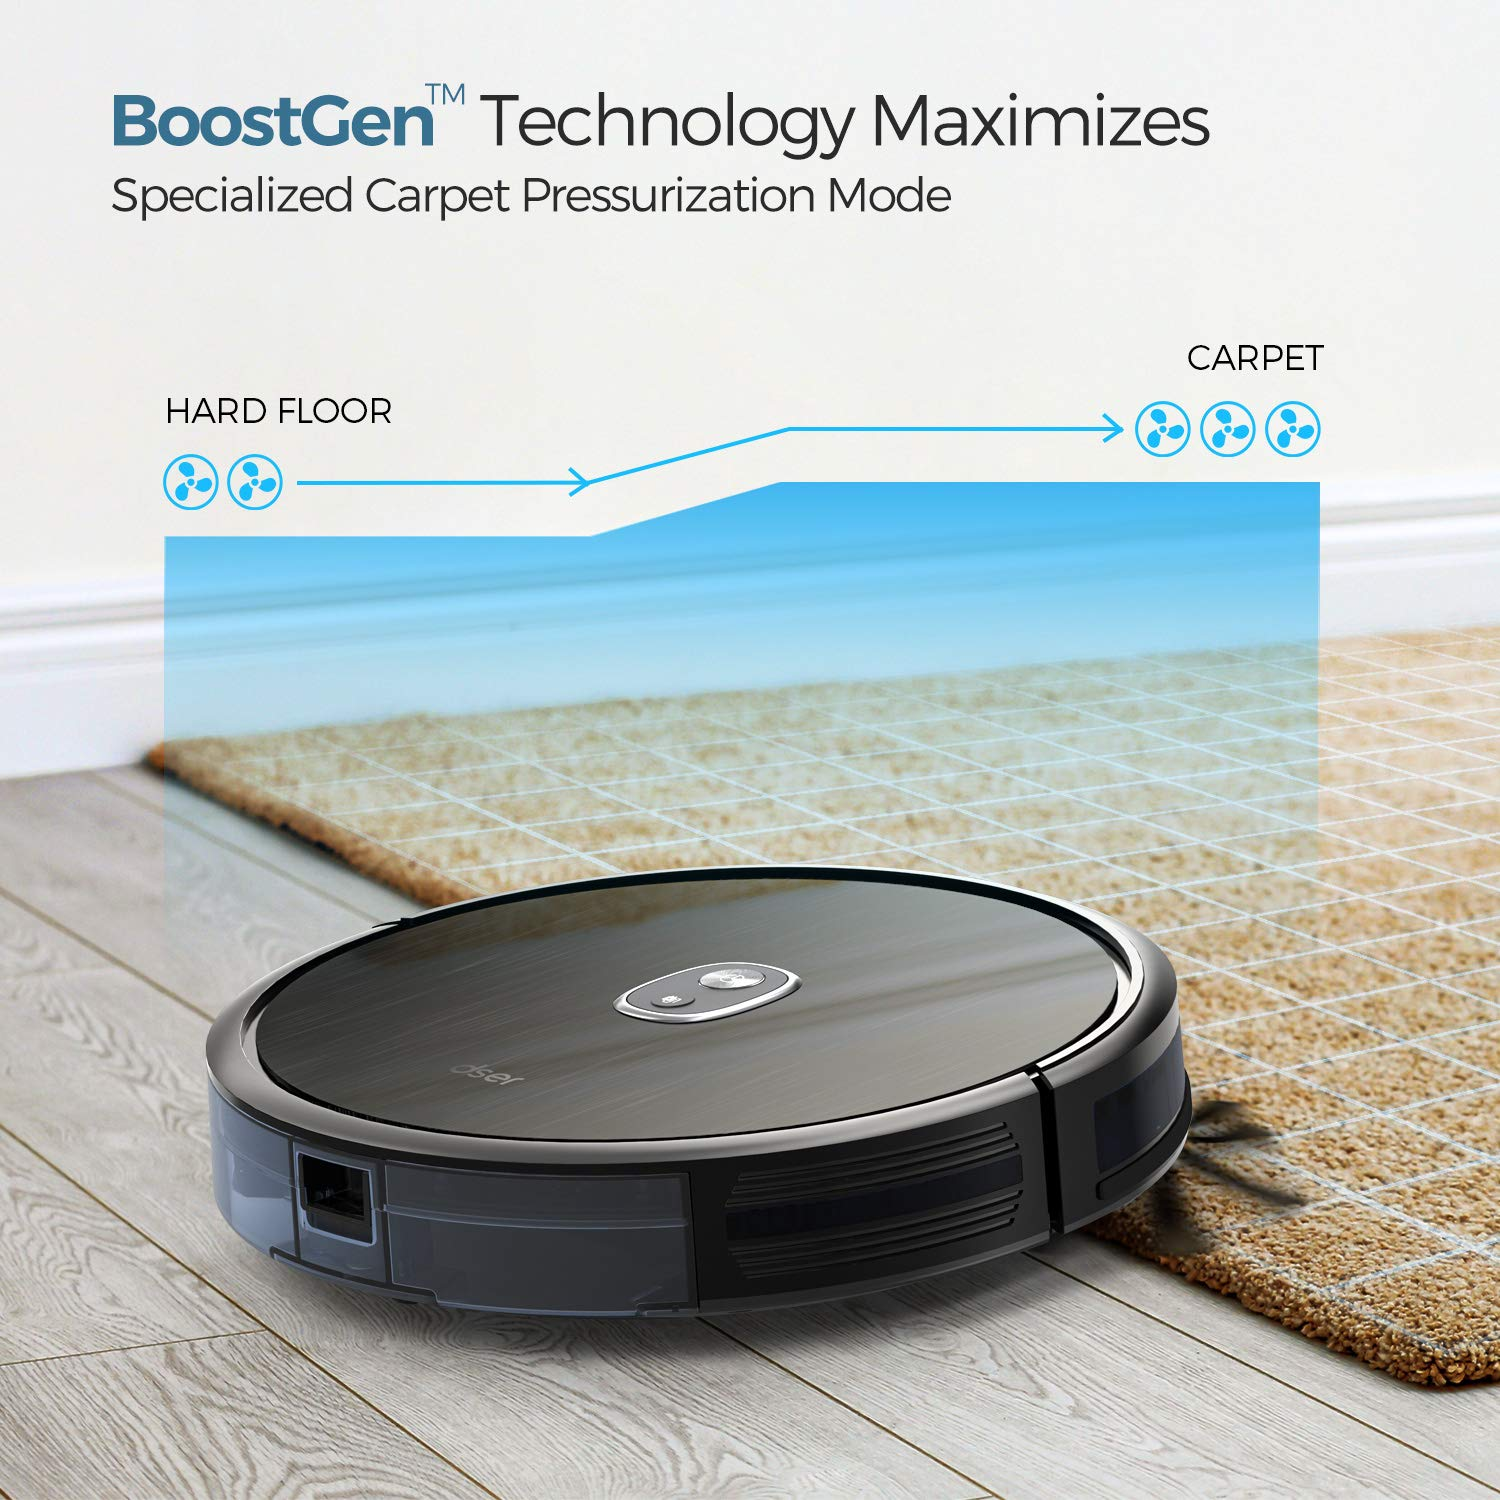 Dser RoboGeek 20T, Robot Vacuum Cleaner, 2.83 inch Super-Thin, Auto Boost and Self-Charging, 1600Pa Strong Suction, Infrared Anti-Drop Robotic Vacuums for Hard Floors and Carpets